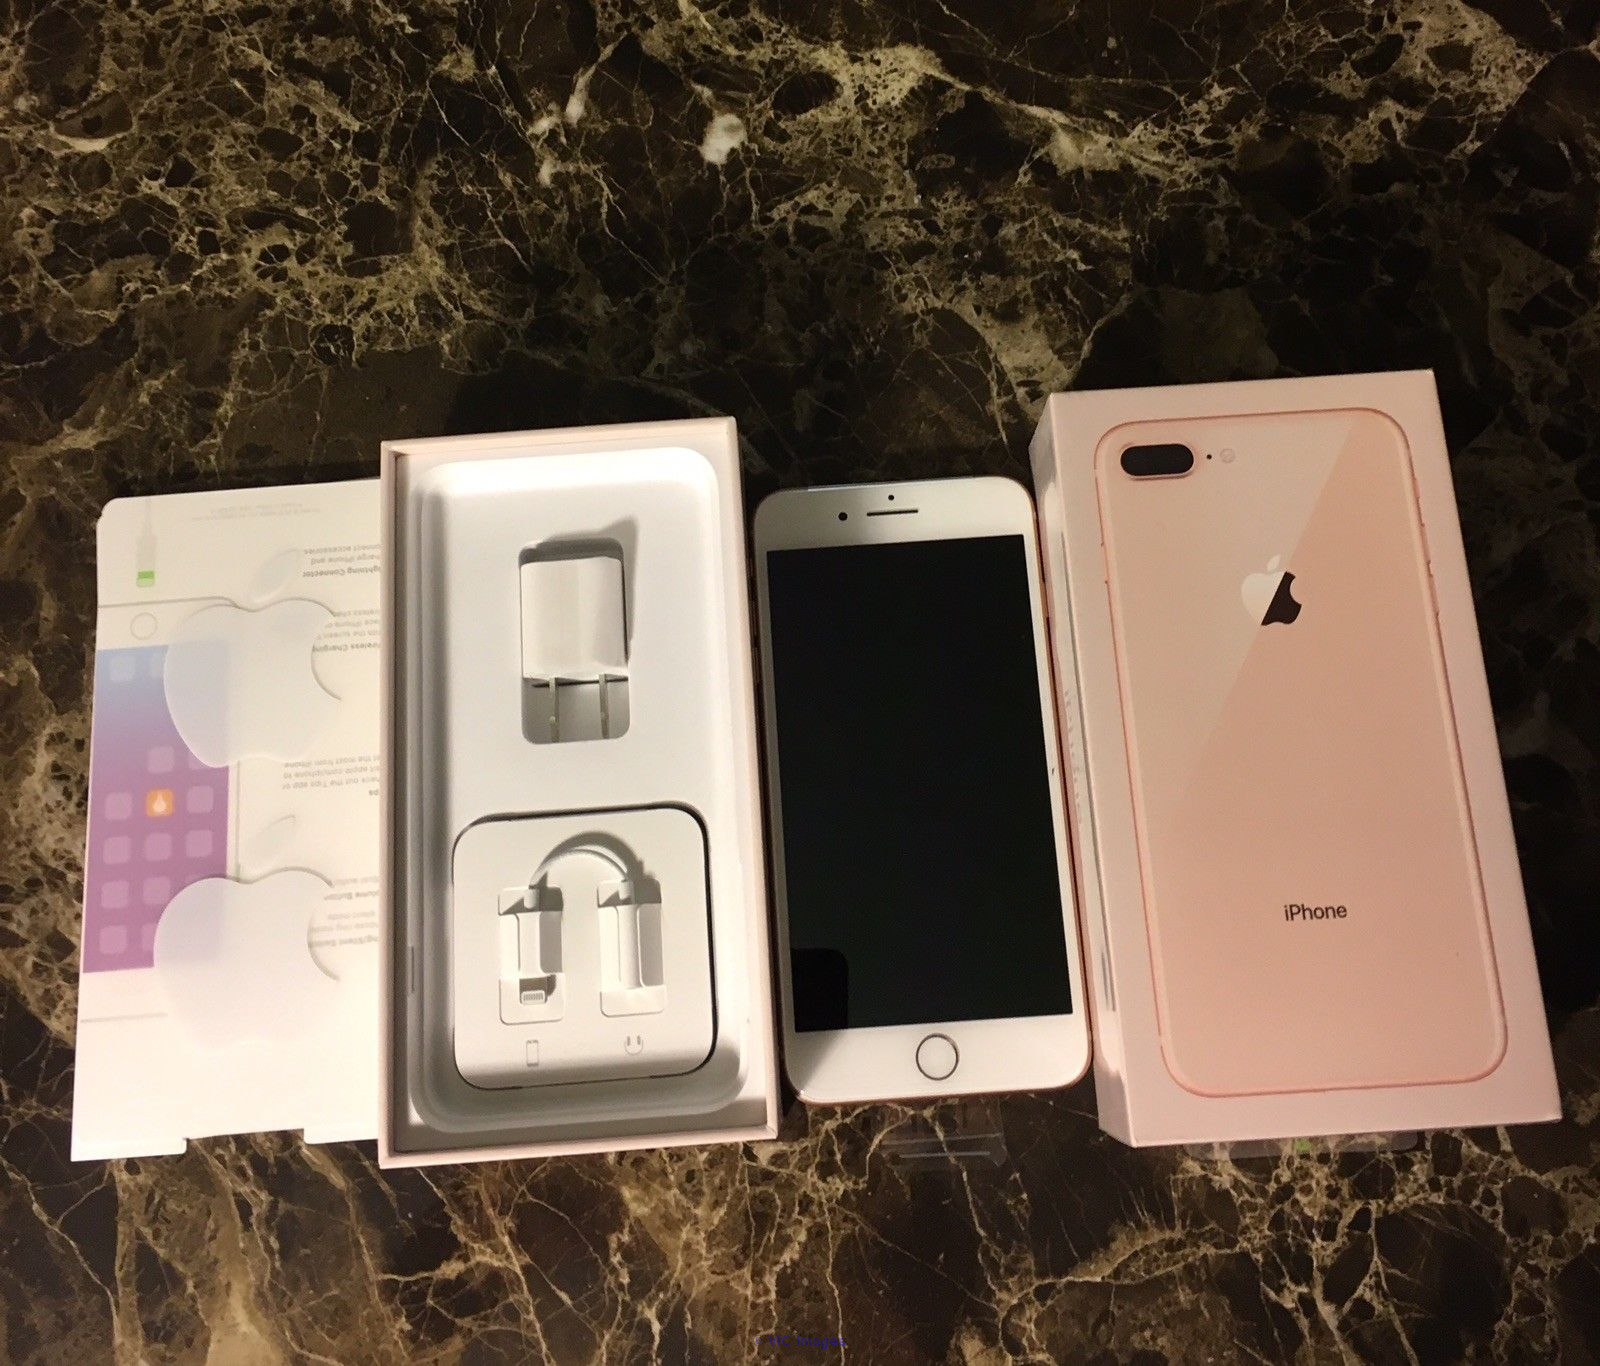 Apple iPhone 8 Plus 256GB Factory Unlocked  Calgary, Alberta, Canada Annonces Classées